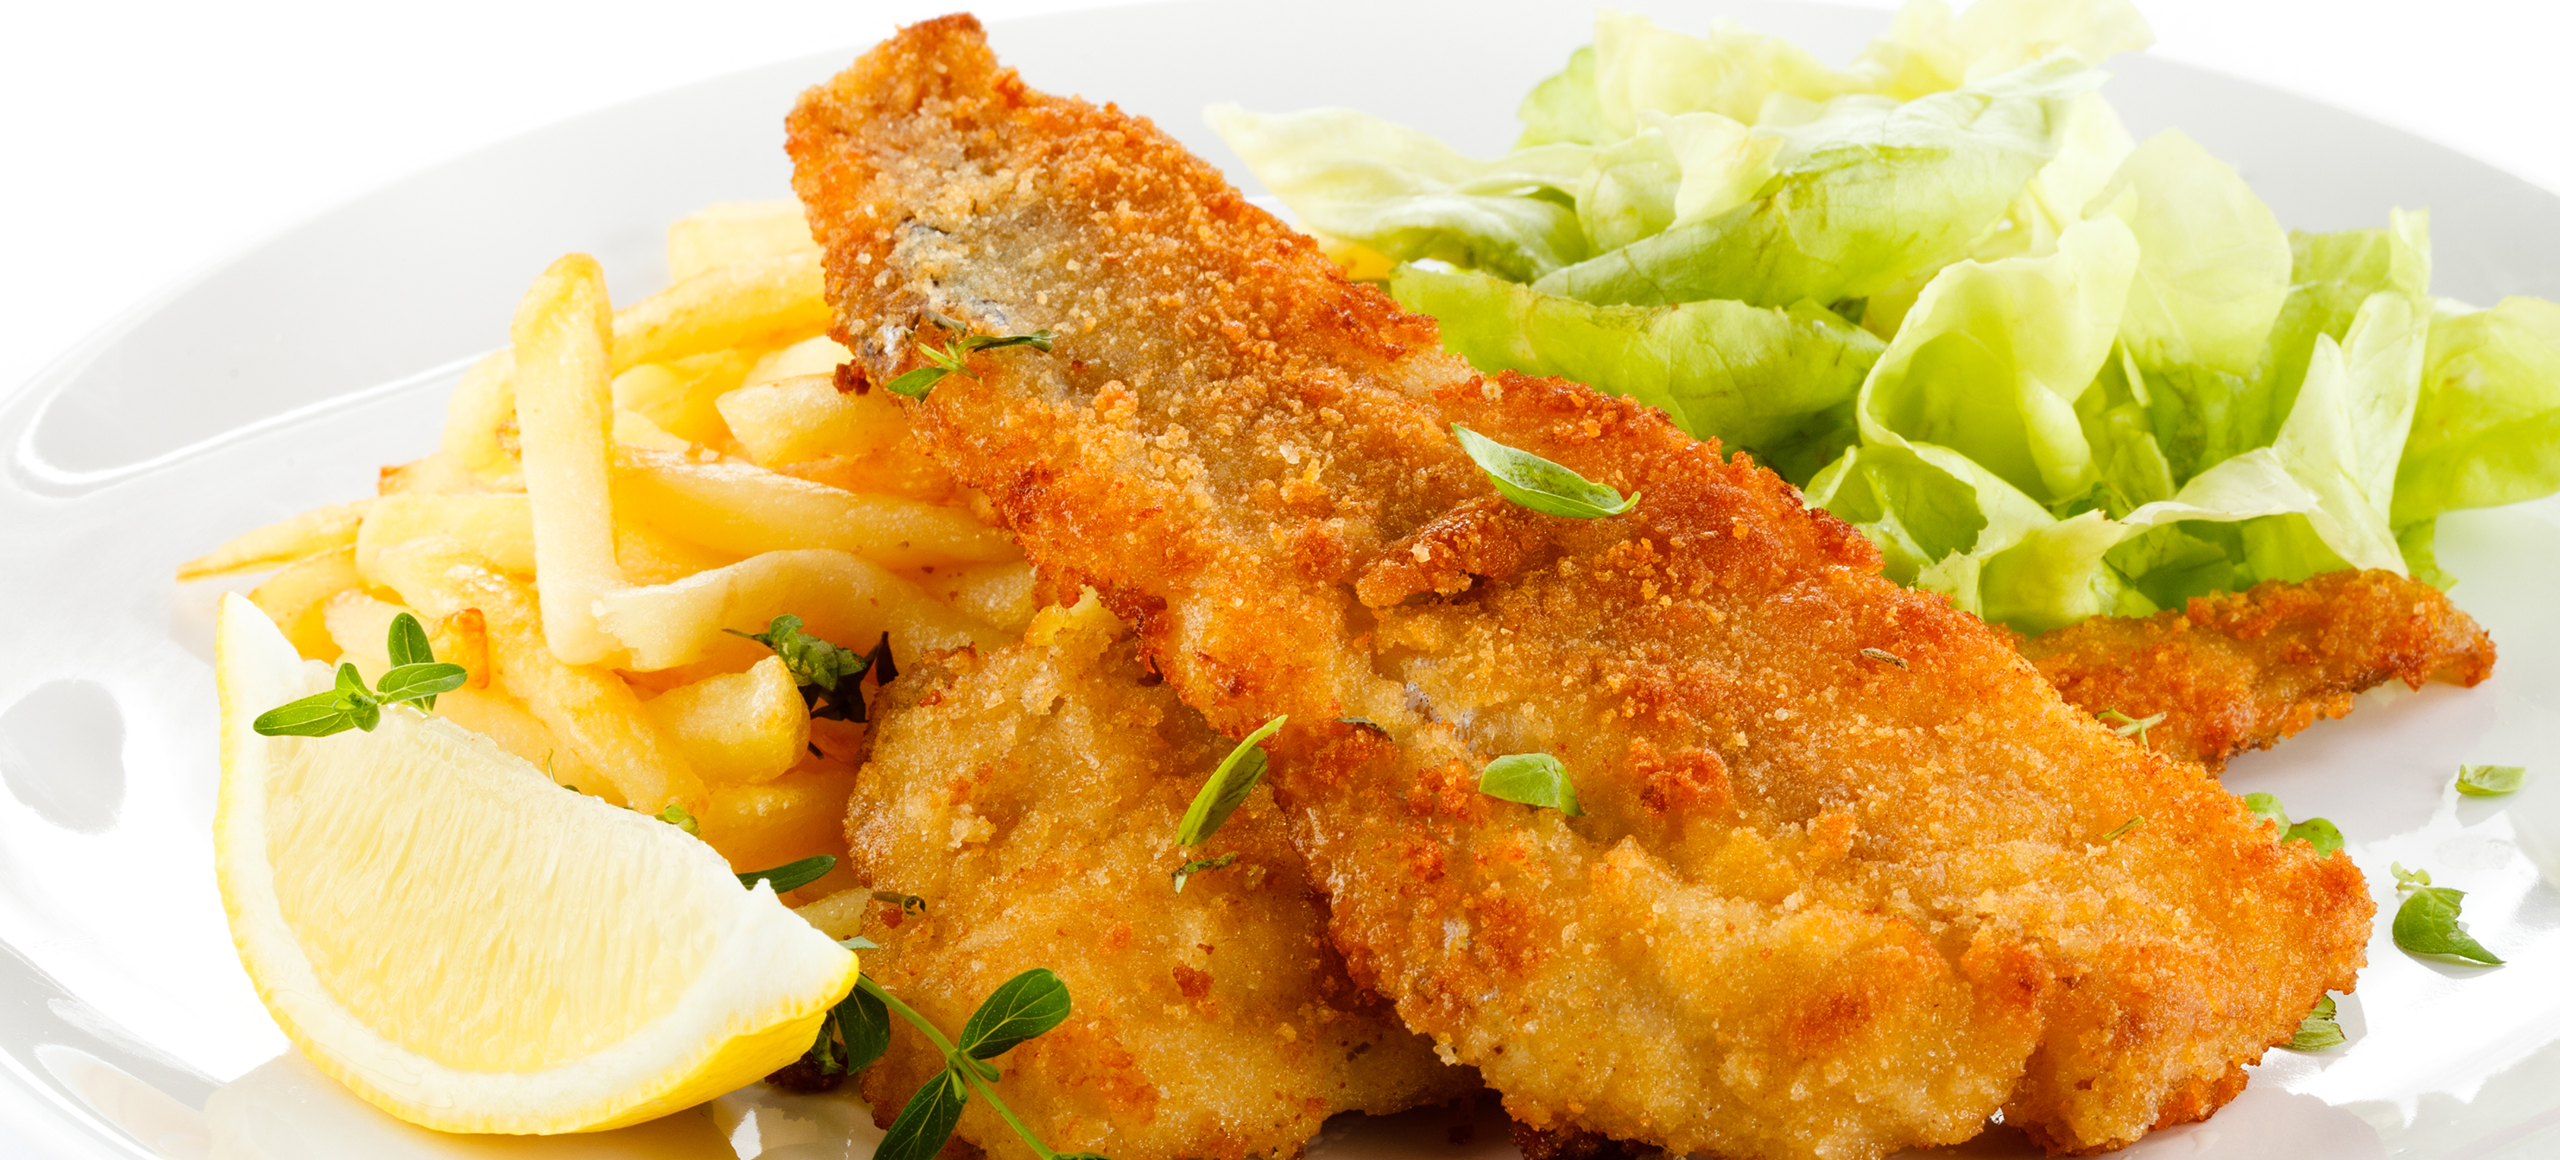 Order online catch isle d open dining for Terrace fish and chips